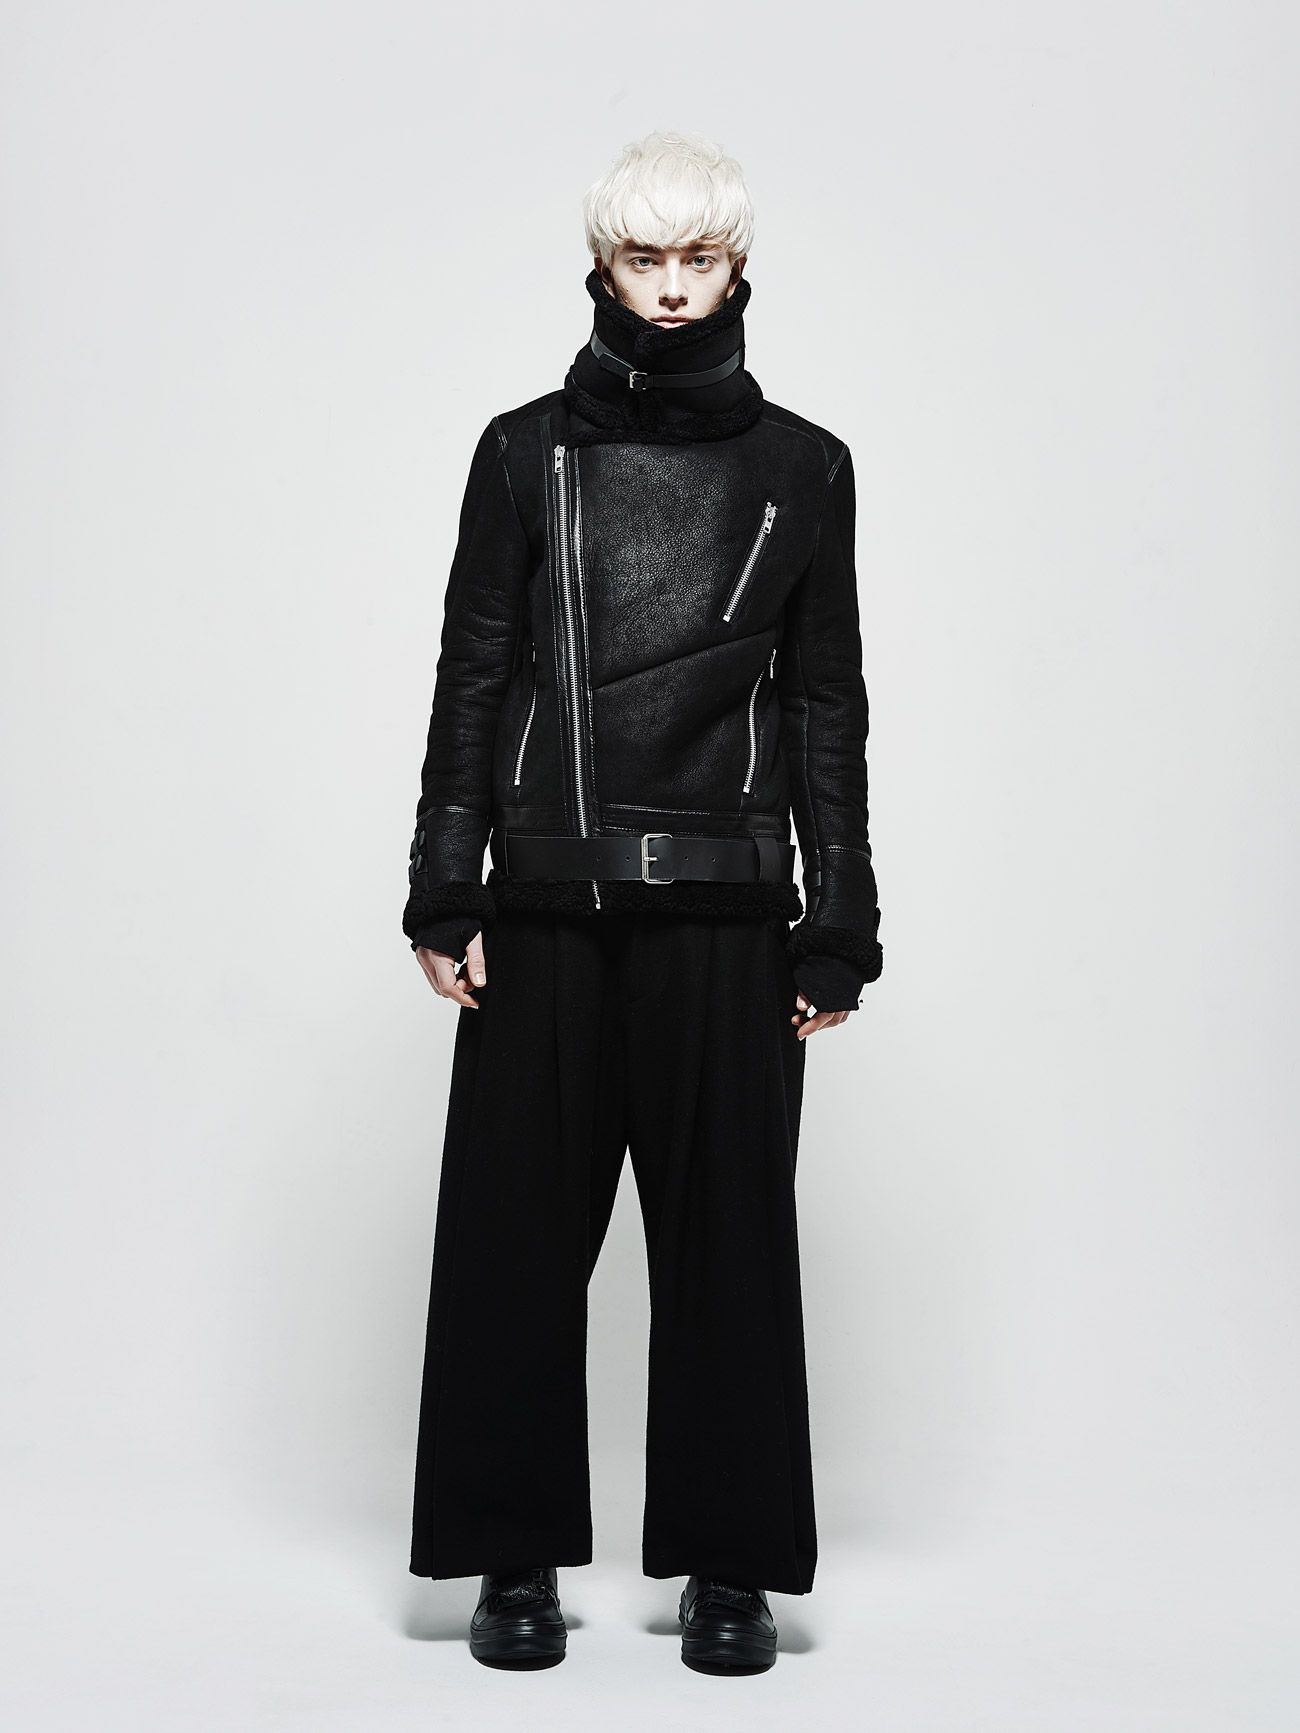 BYUNGMUN SEO : 2015 A/W COLLECTION | Chasseur Magazine